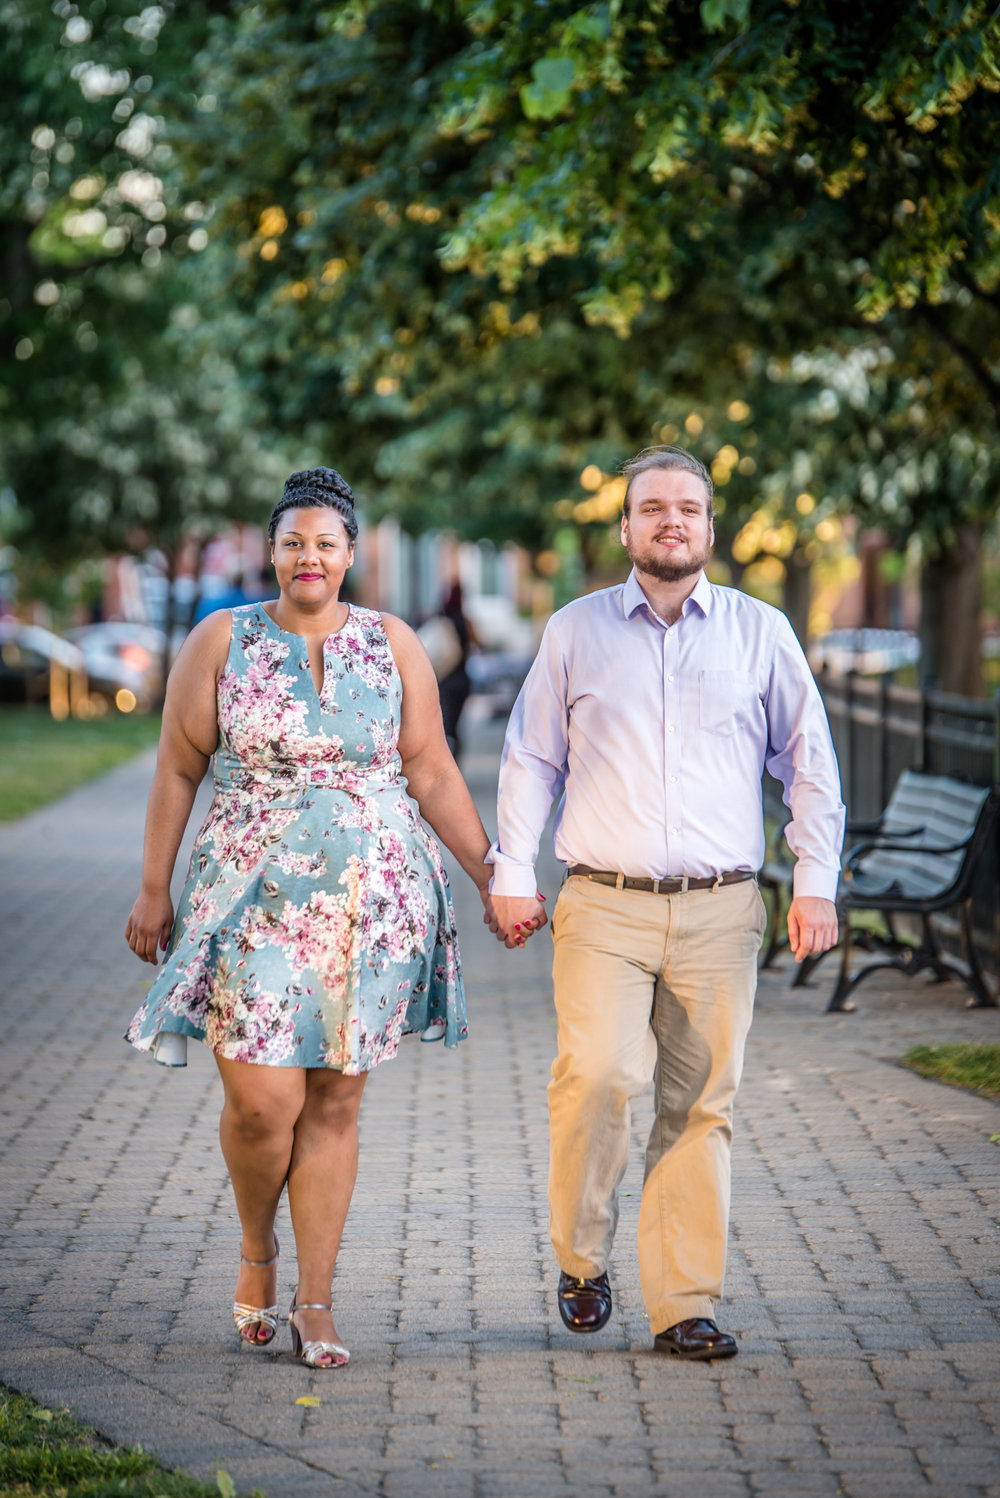 Ronnie Bliss Wedding Photography Baltimore Maryland strolling down park path